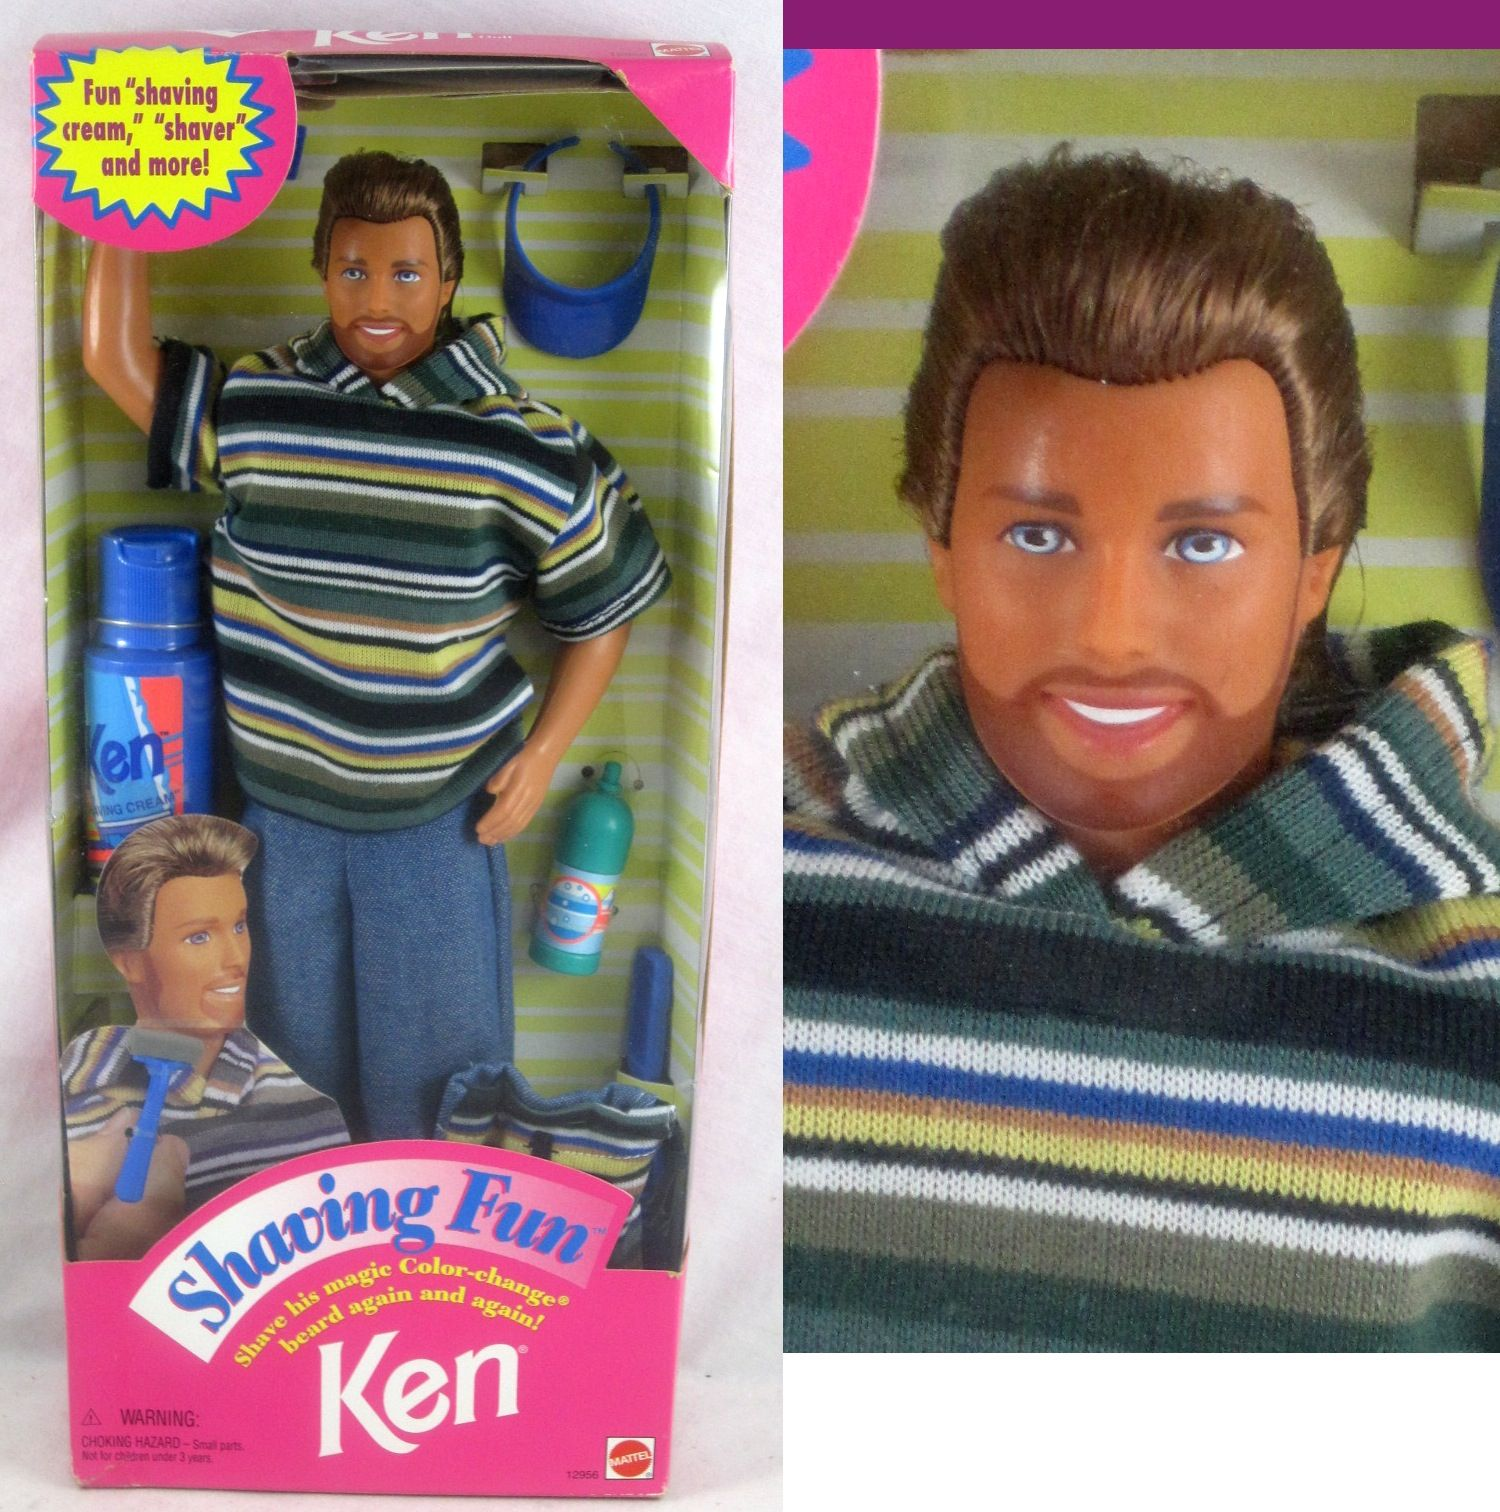 Shaving Fun Ken Doll from Mattel